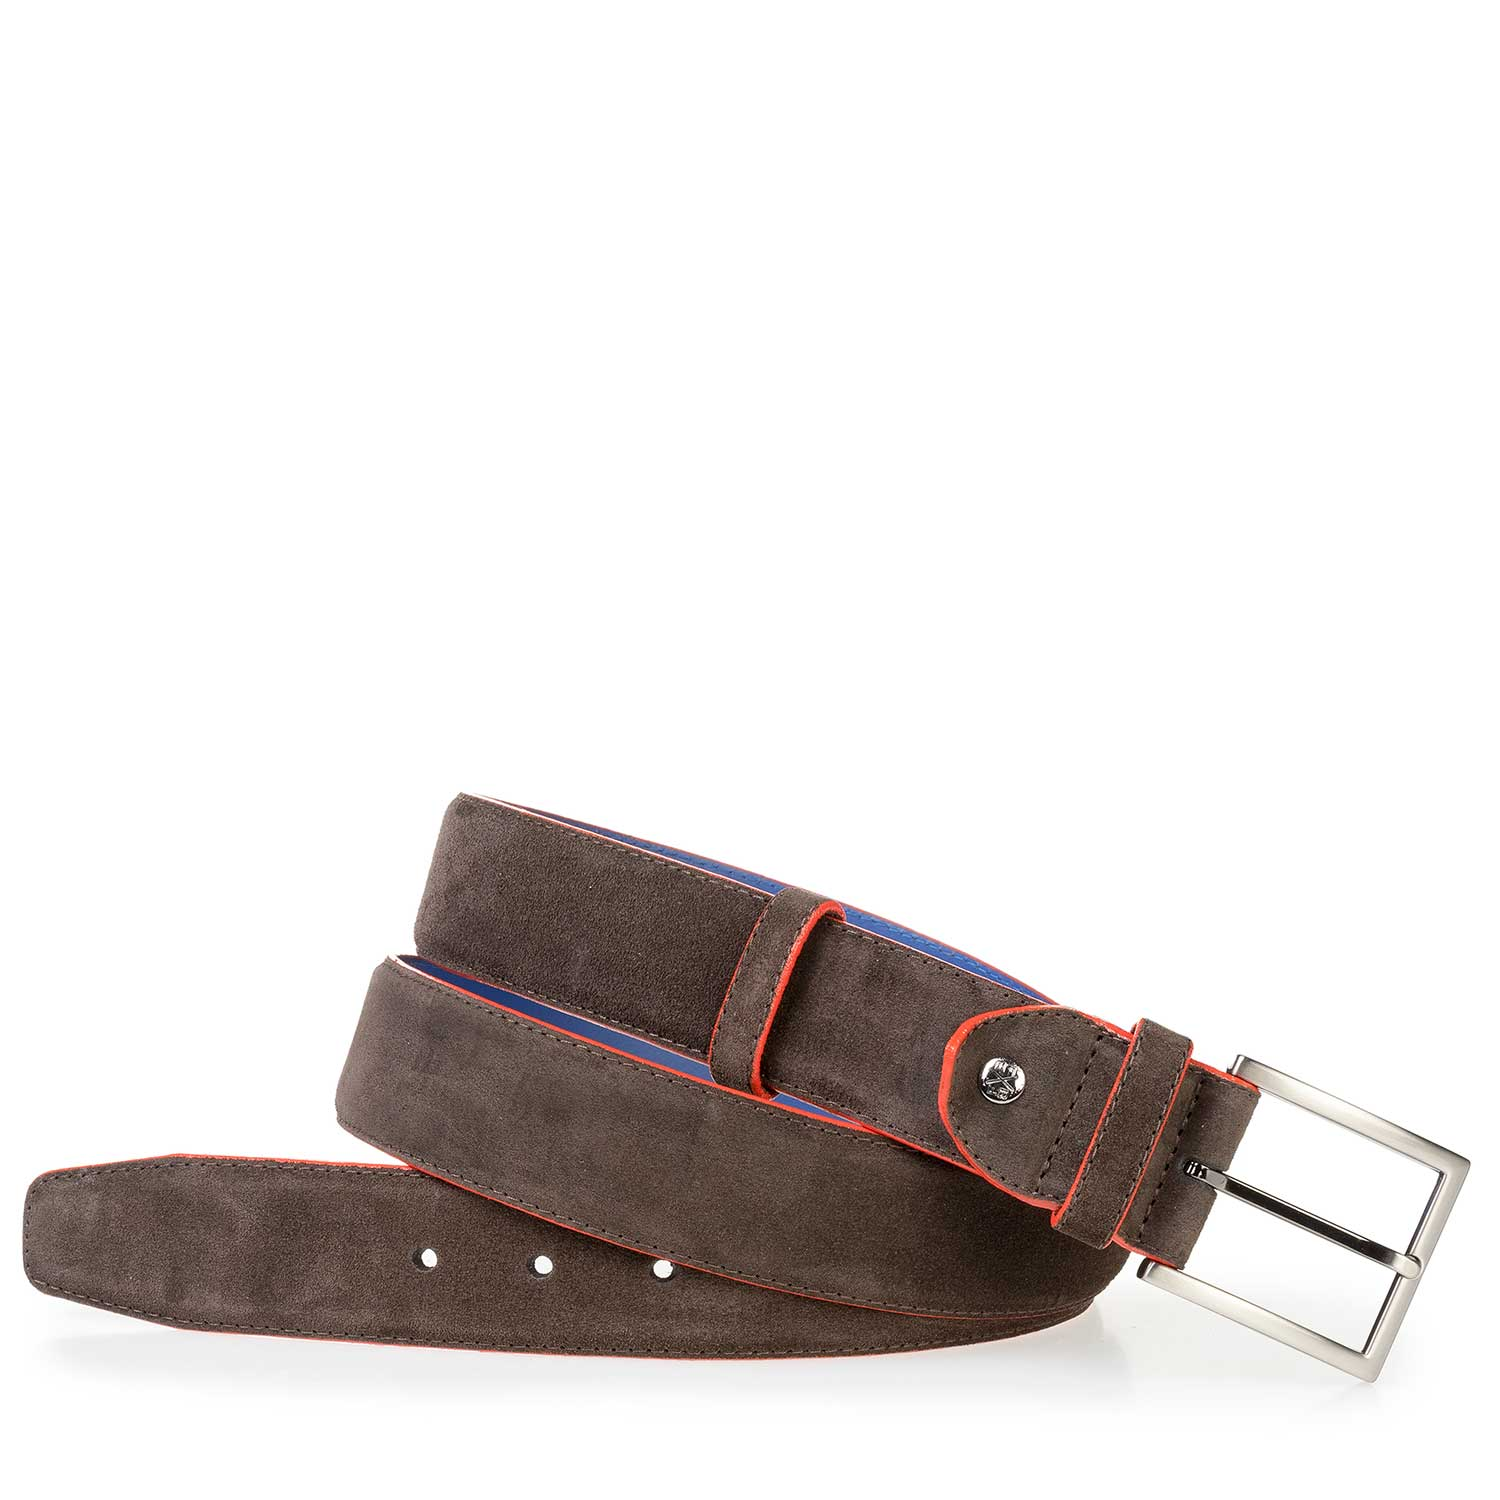 75037/15 - Dark brown suede leather belt